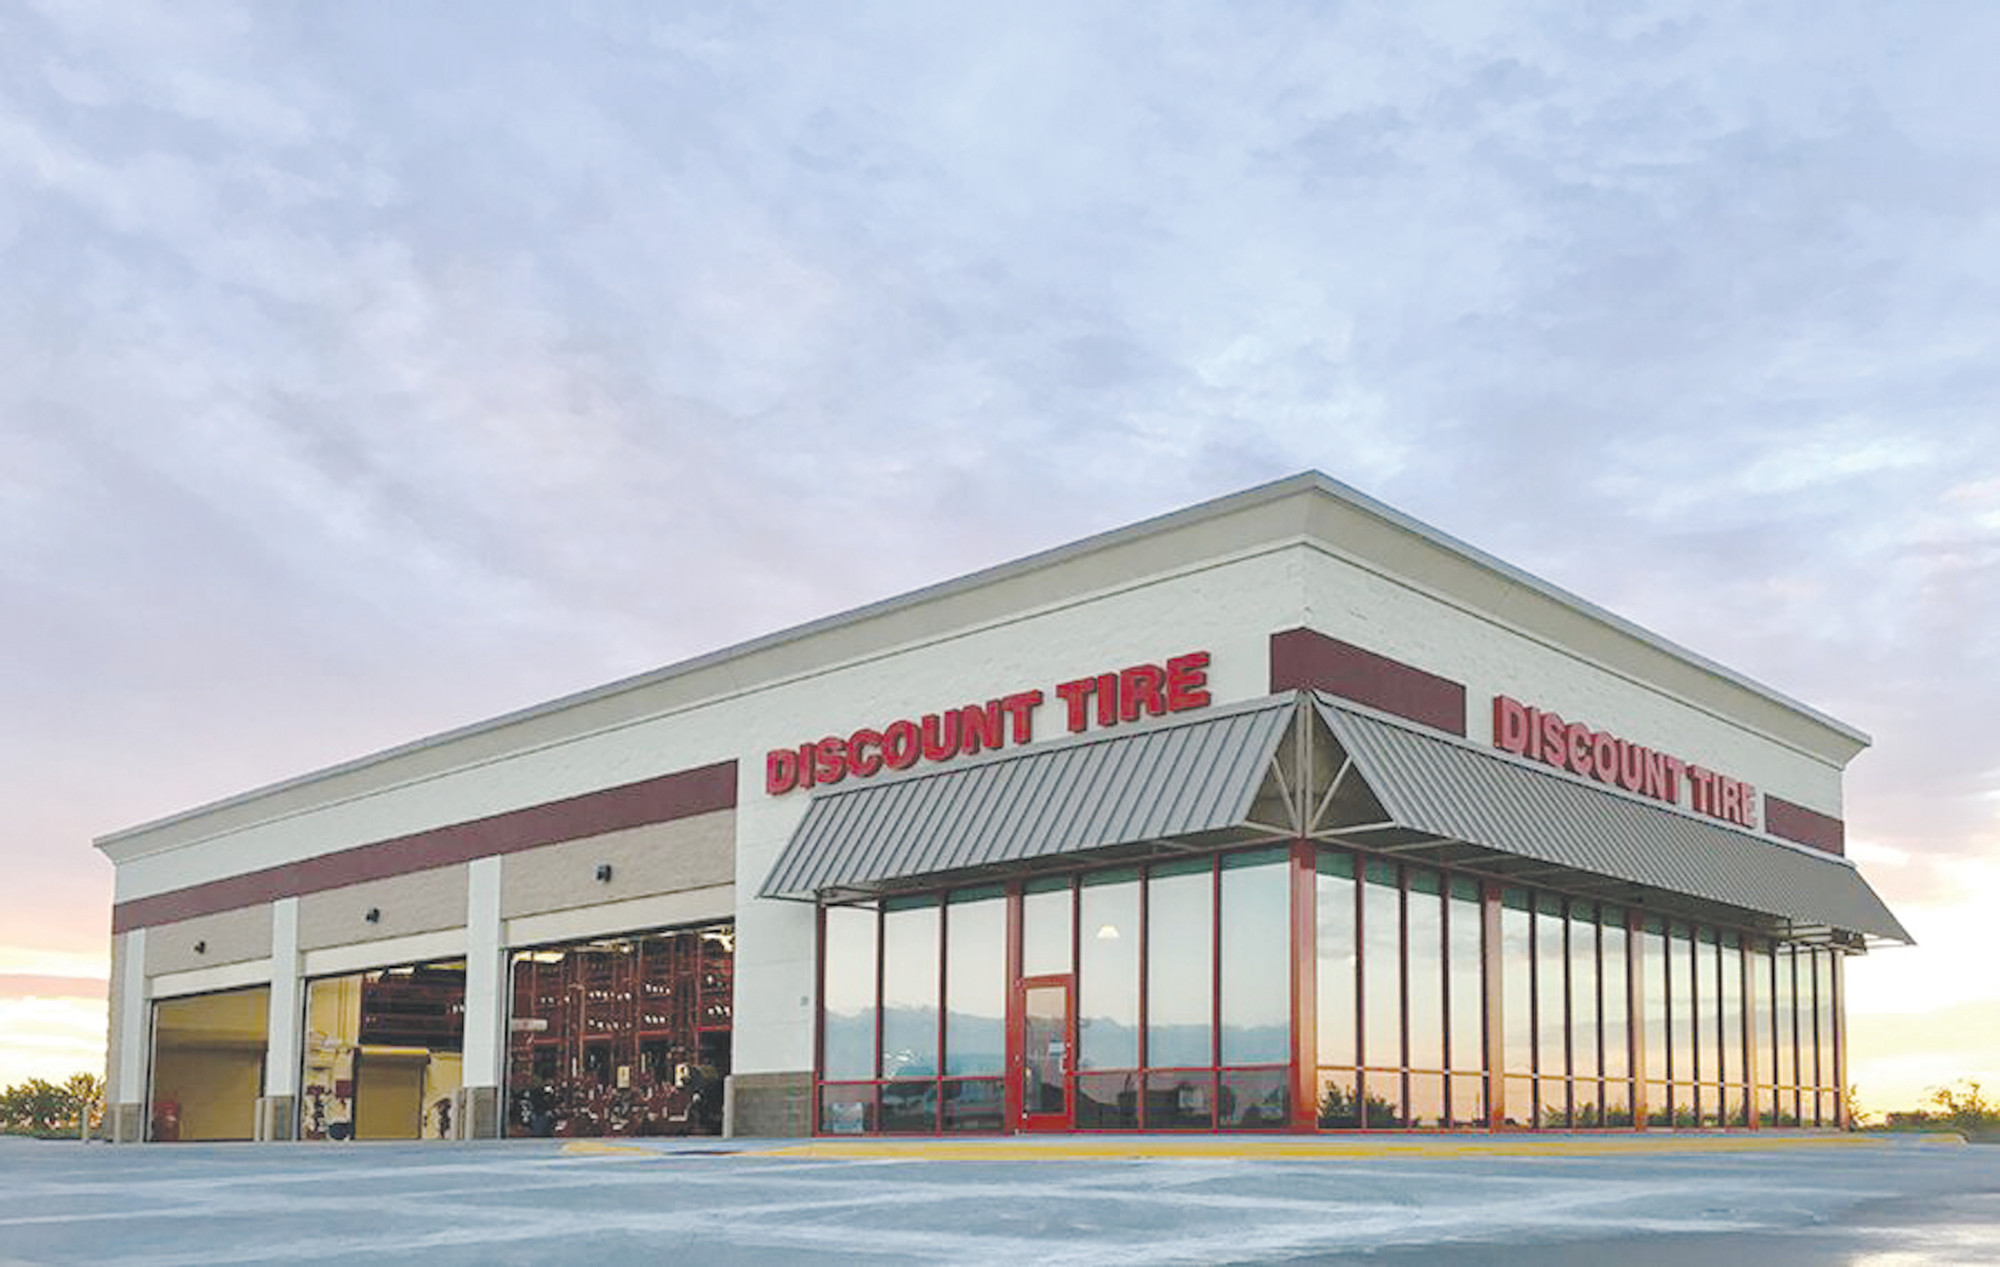 Business News: Discount Tire coming to Sumter | The Sumter Item